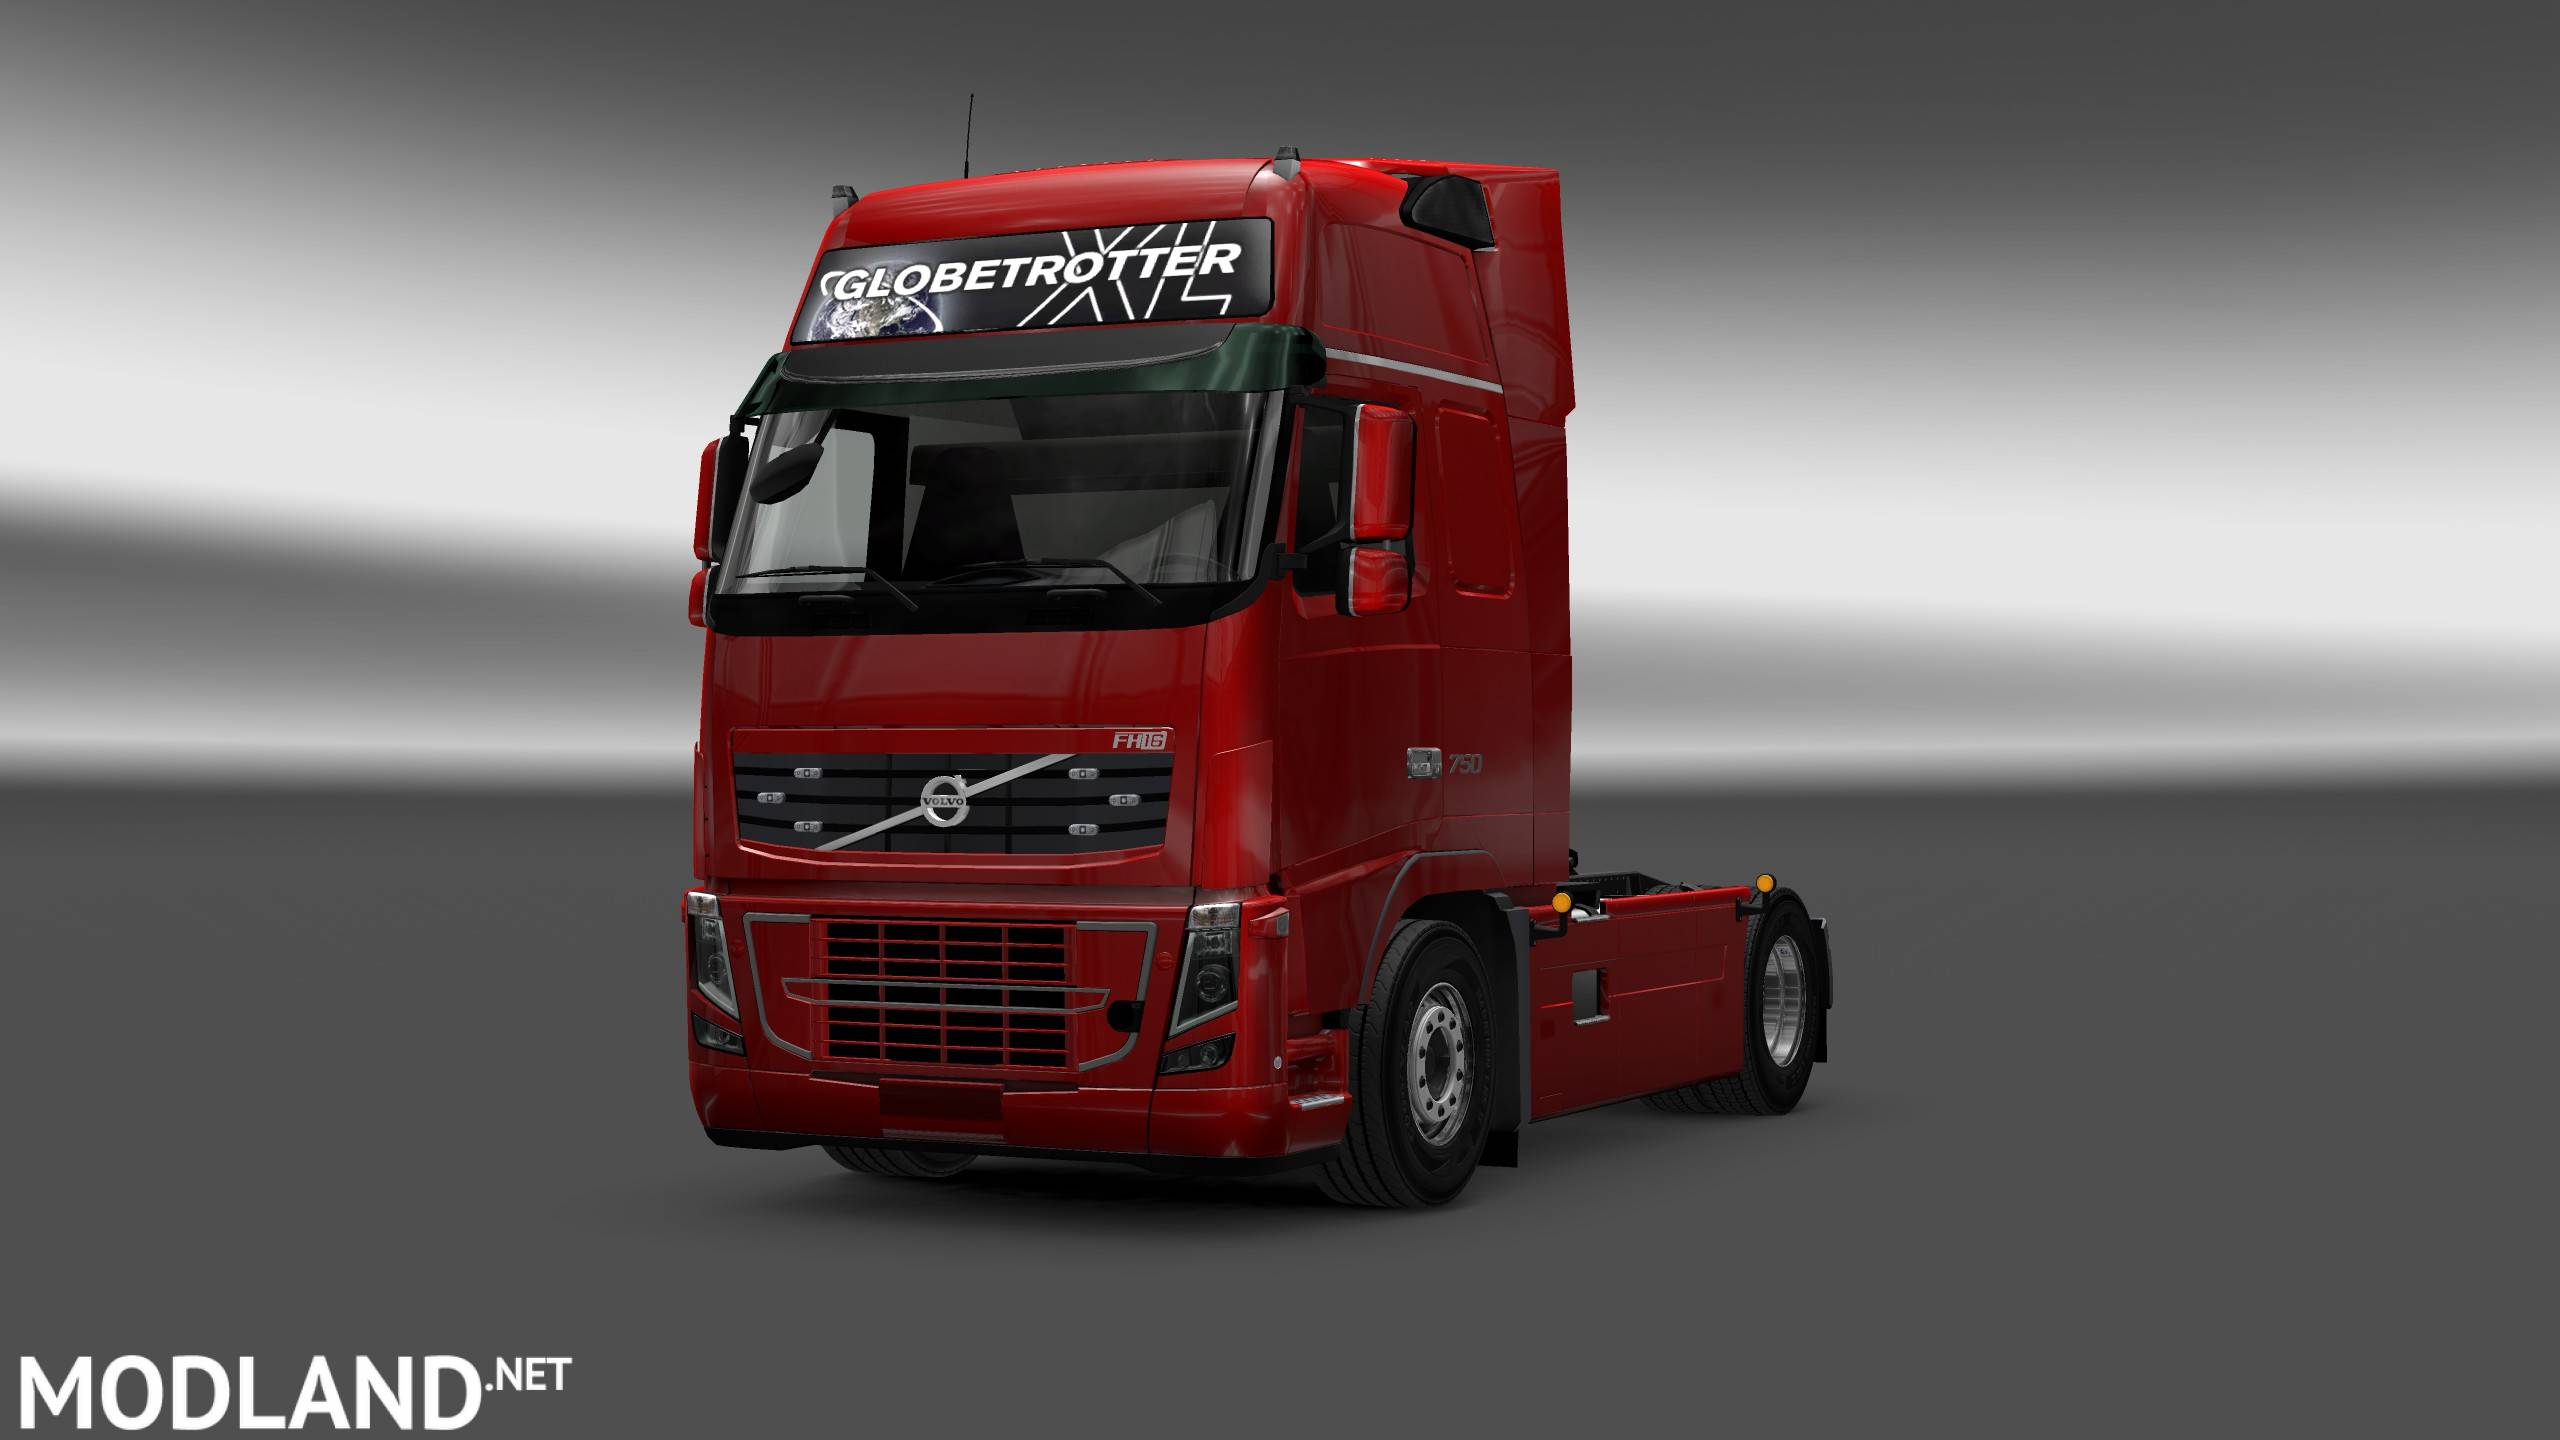 Volvo FH16 2009 Interior/Exterior Rework v 1.1 mod for ETS 2 Scania Trucks Interior